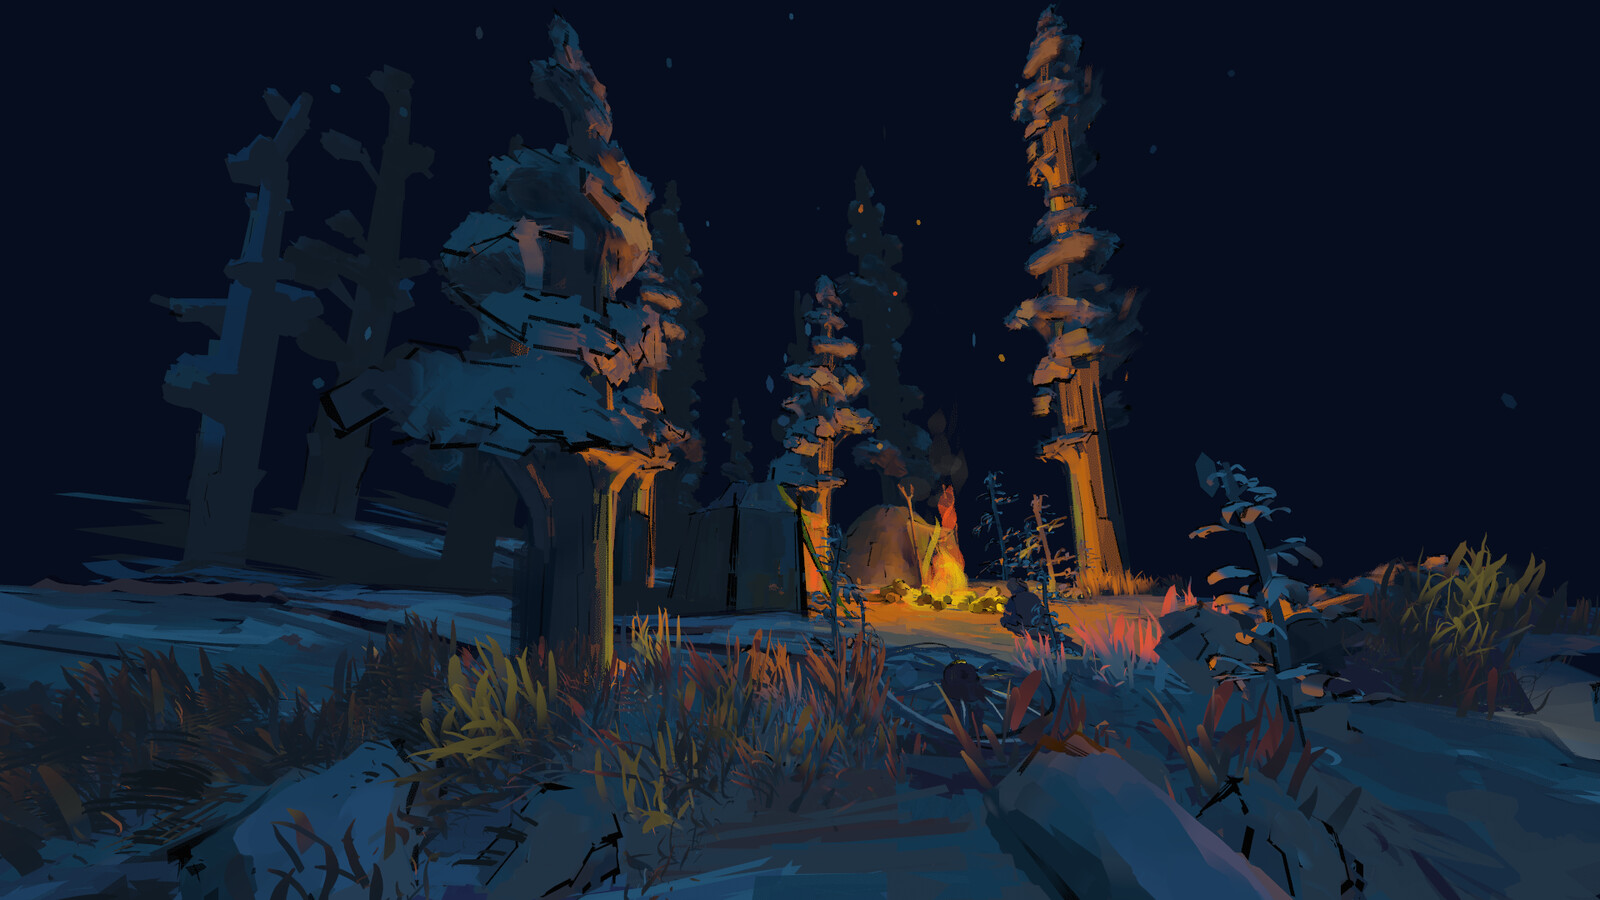 Campfire scene painted in VR using Quill